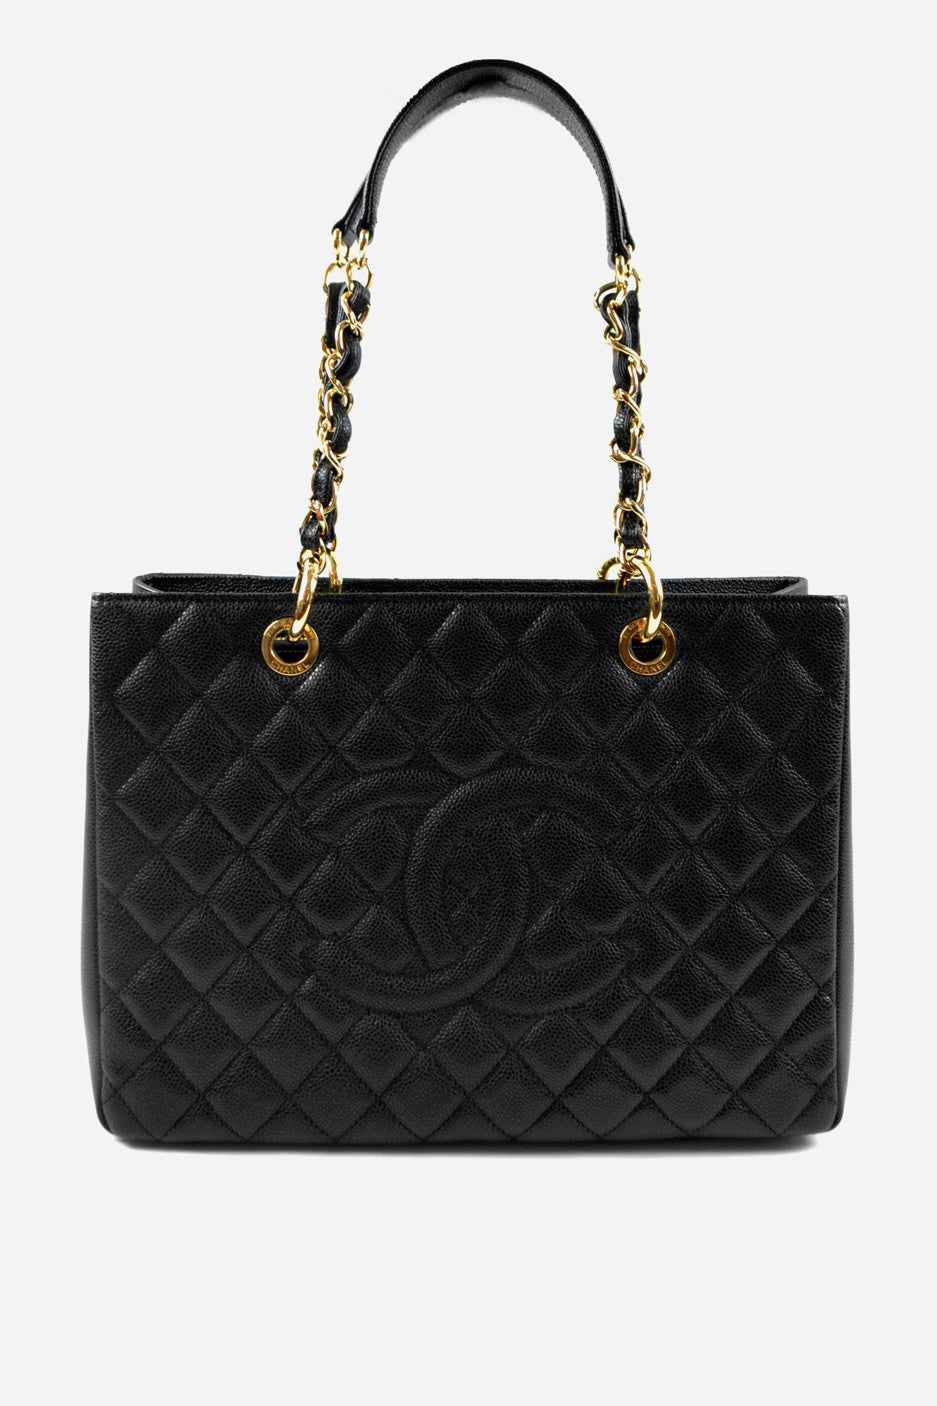 Black Caviar Leather Grand Shopping Tote GHW